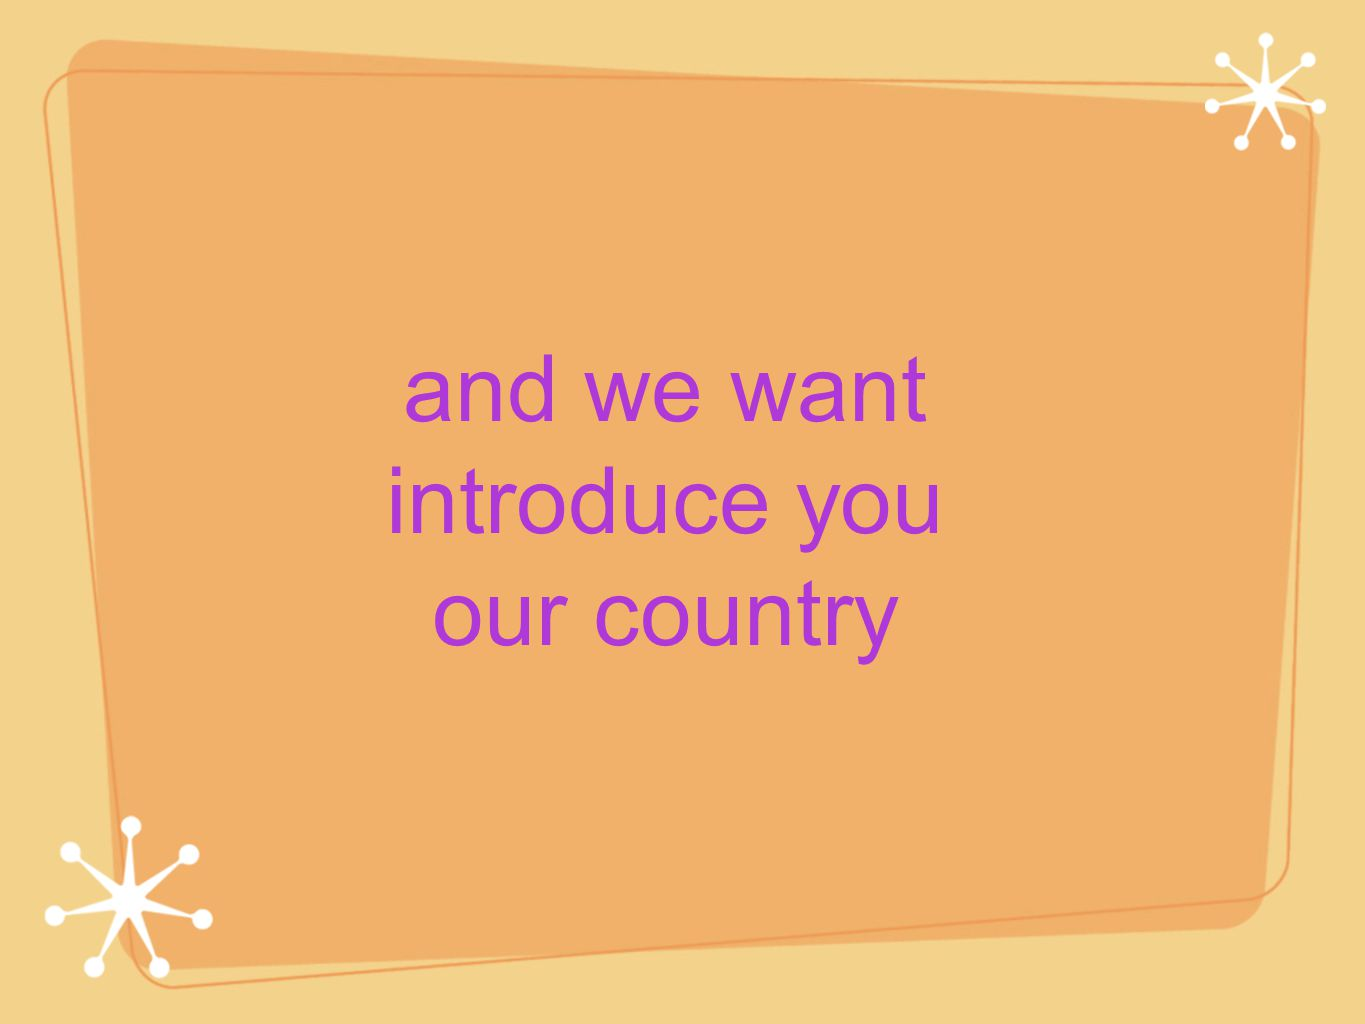 and we want introduce you our country